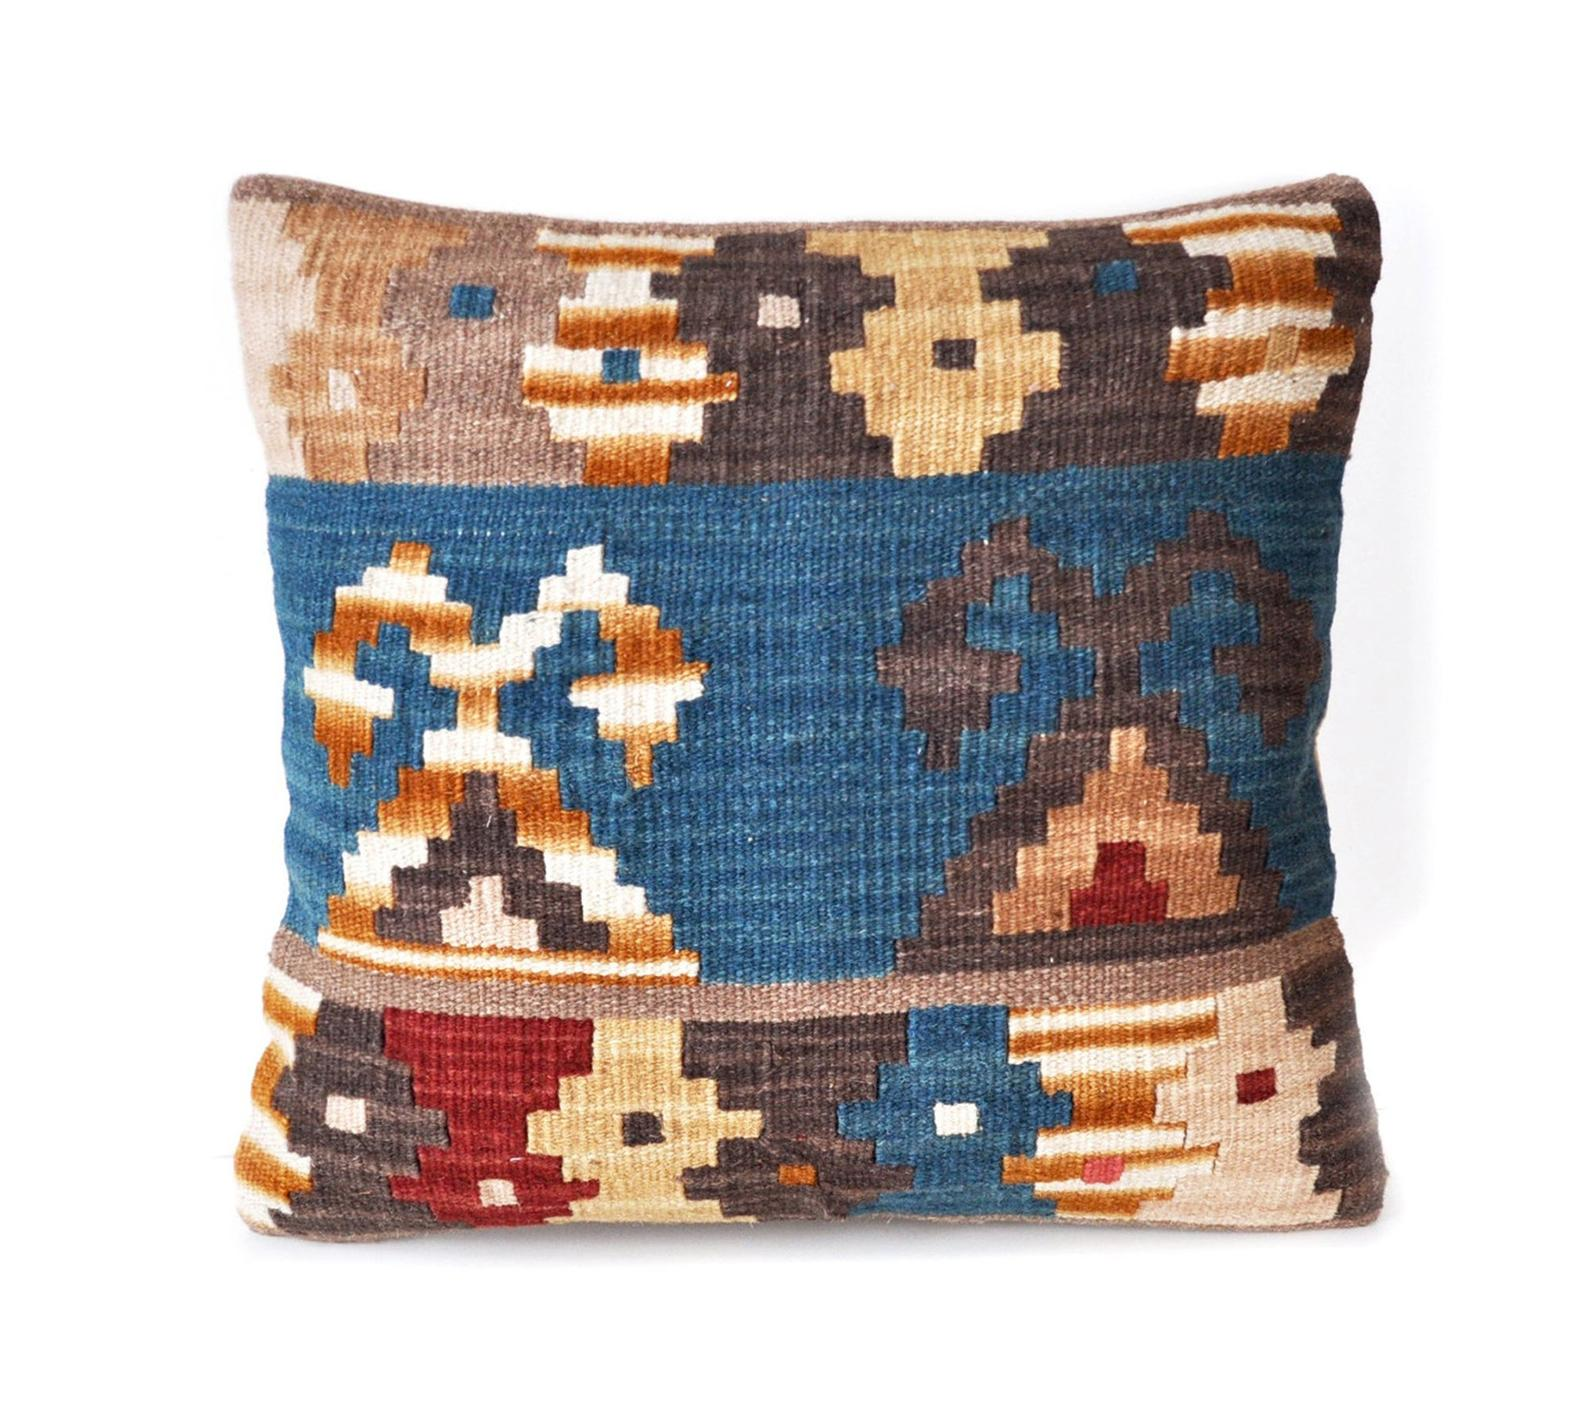 18″x18″ Hand-woven Wool Kilim Pillow Cover 12980792